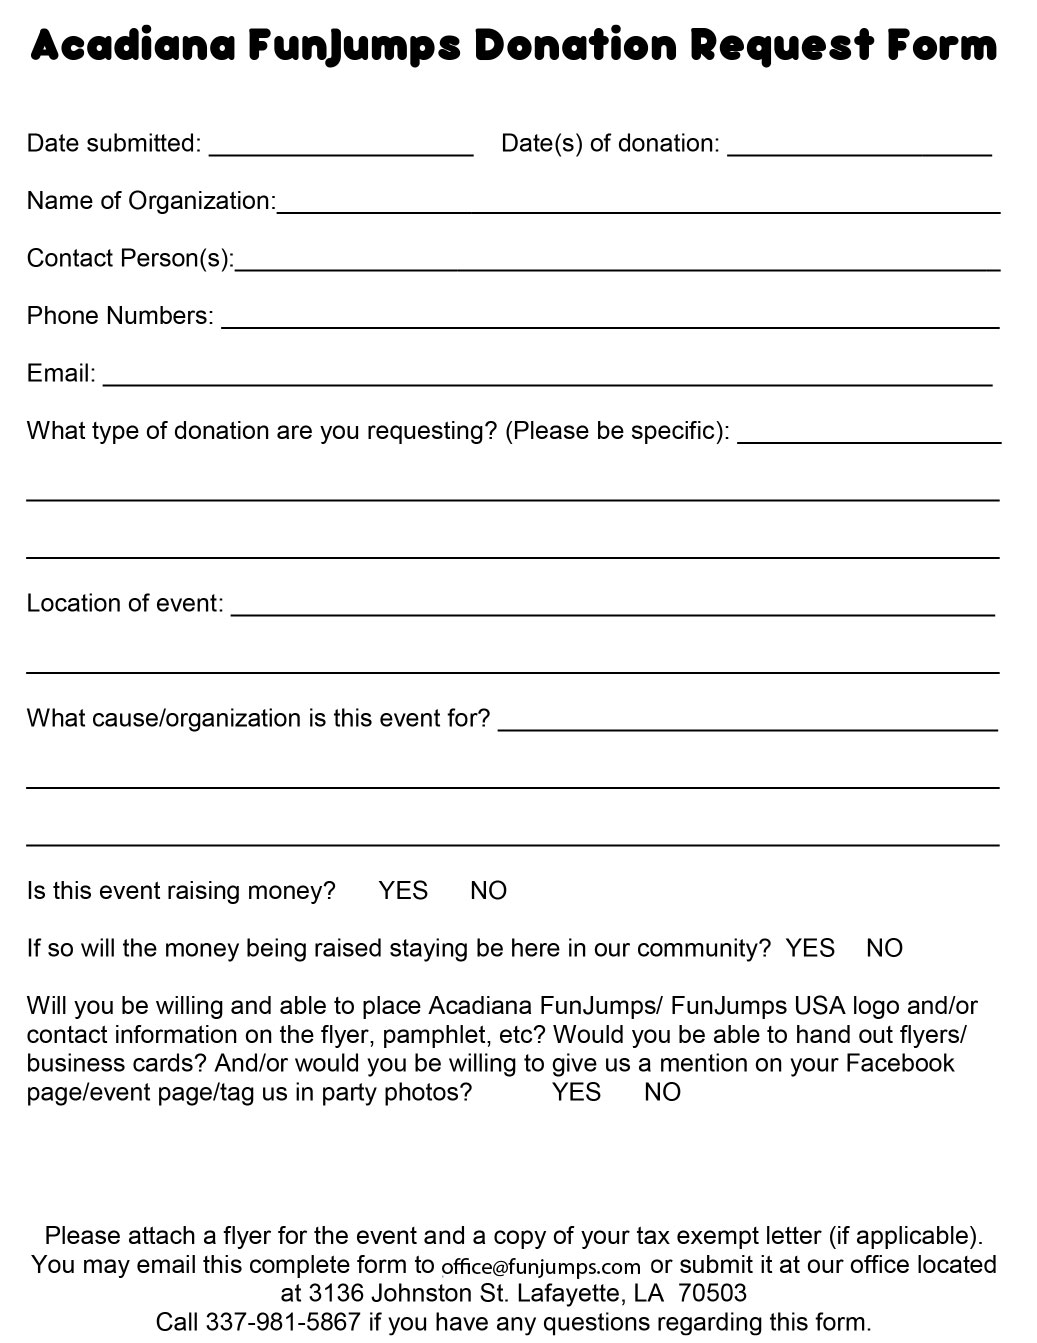 Acadiana FunJumps Donation Request Form